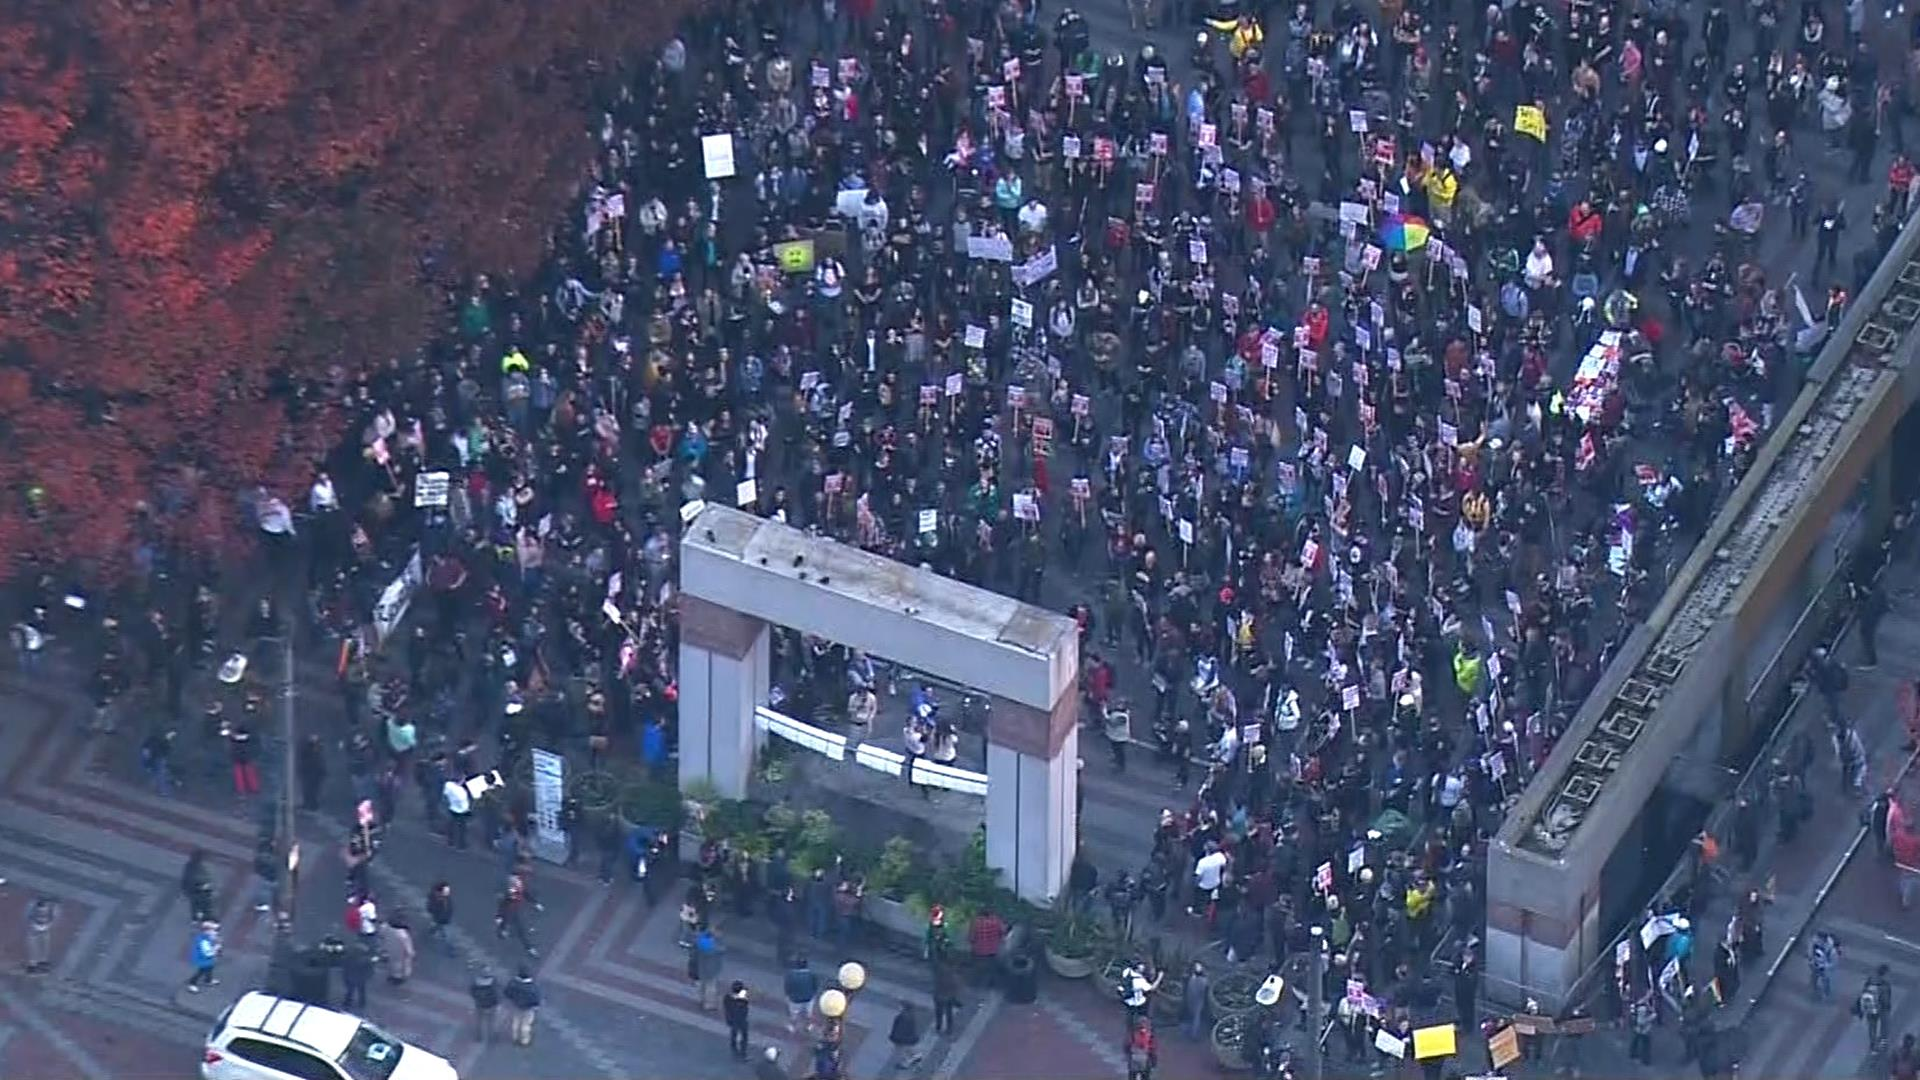 Donald Trump Win Leads To Street Protests Across US NBC News - Us news today president protesters map